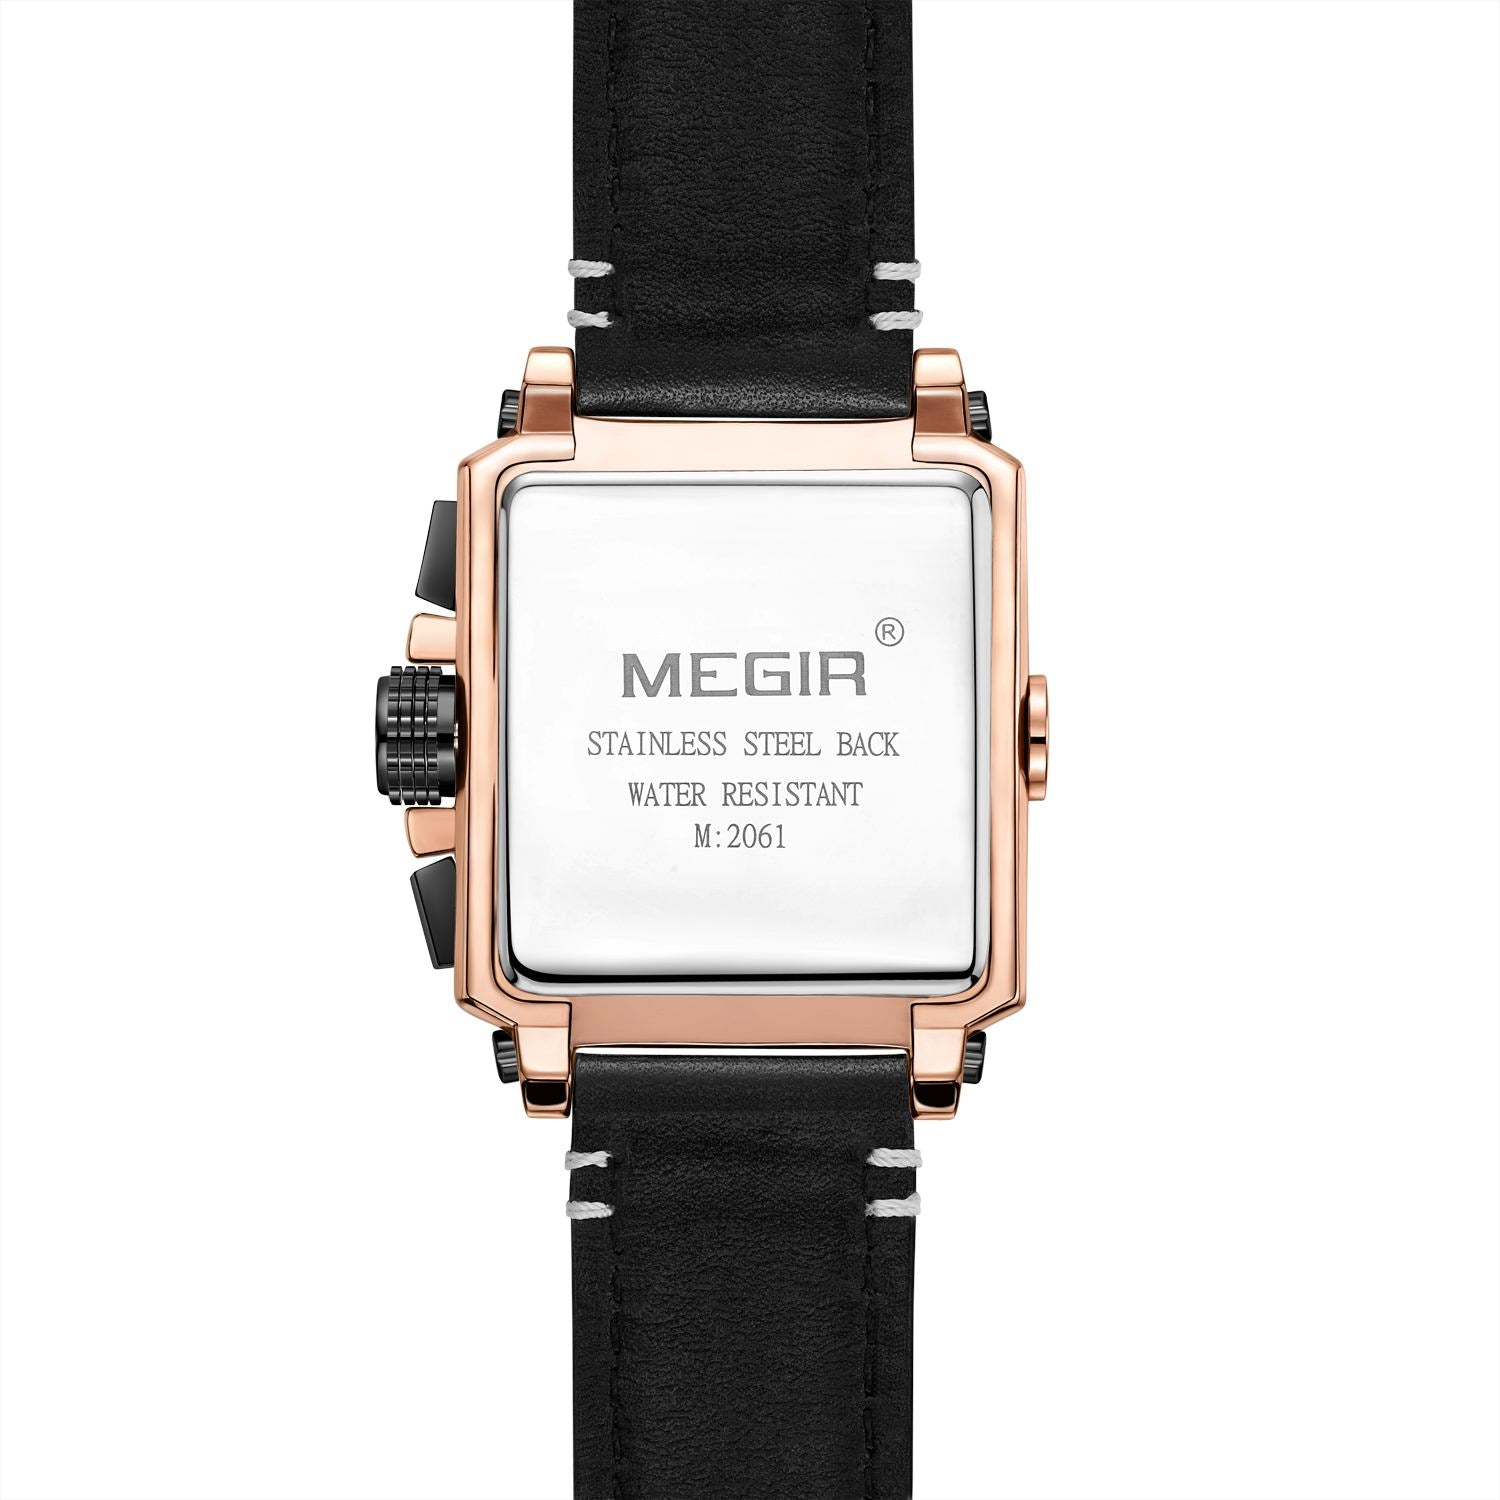 MEGIR men's creative watch, top brand luxury 2061 - MEGIR